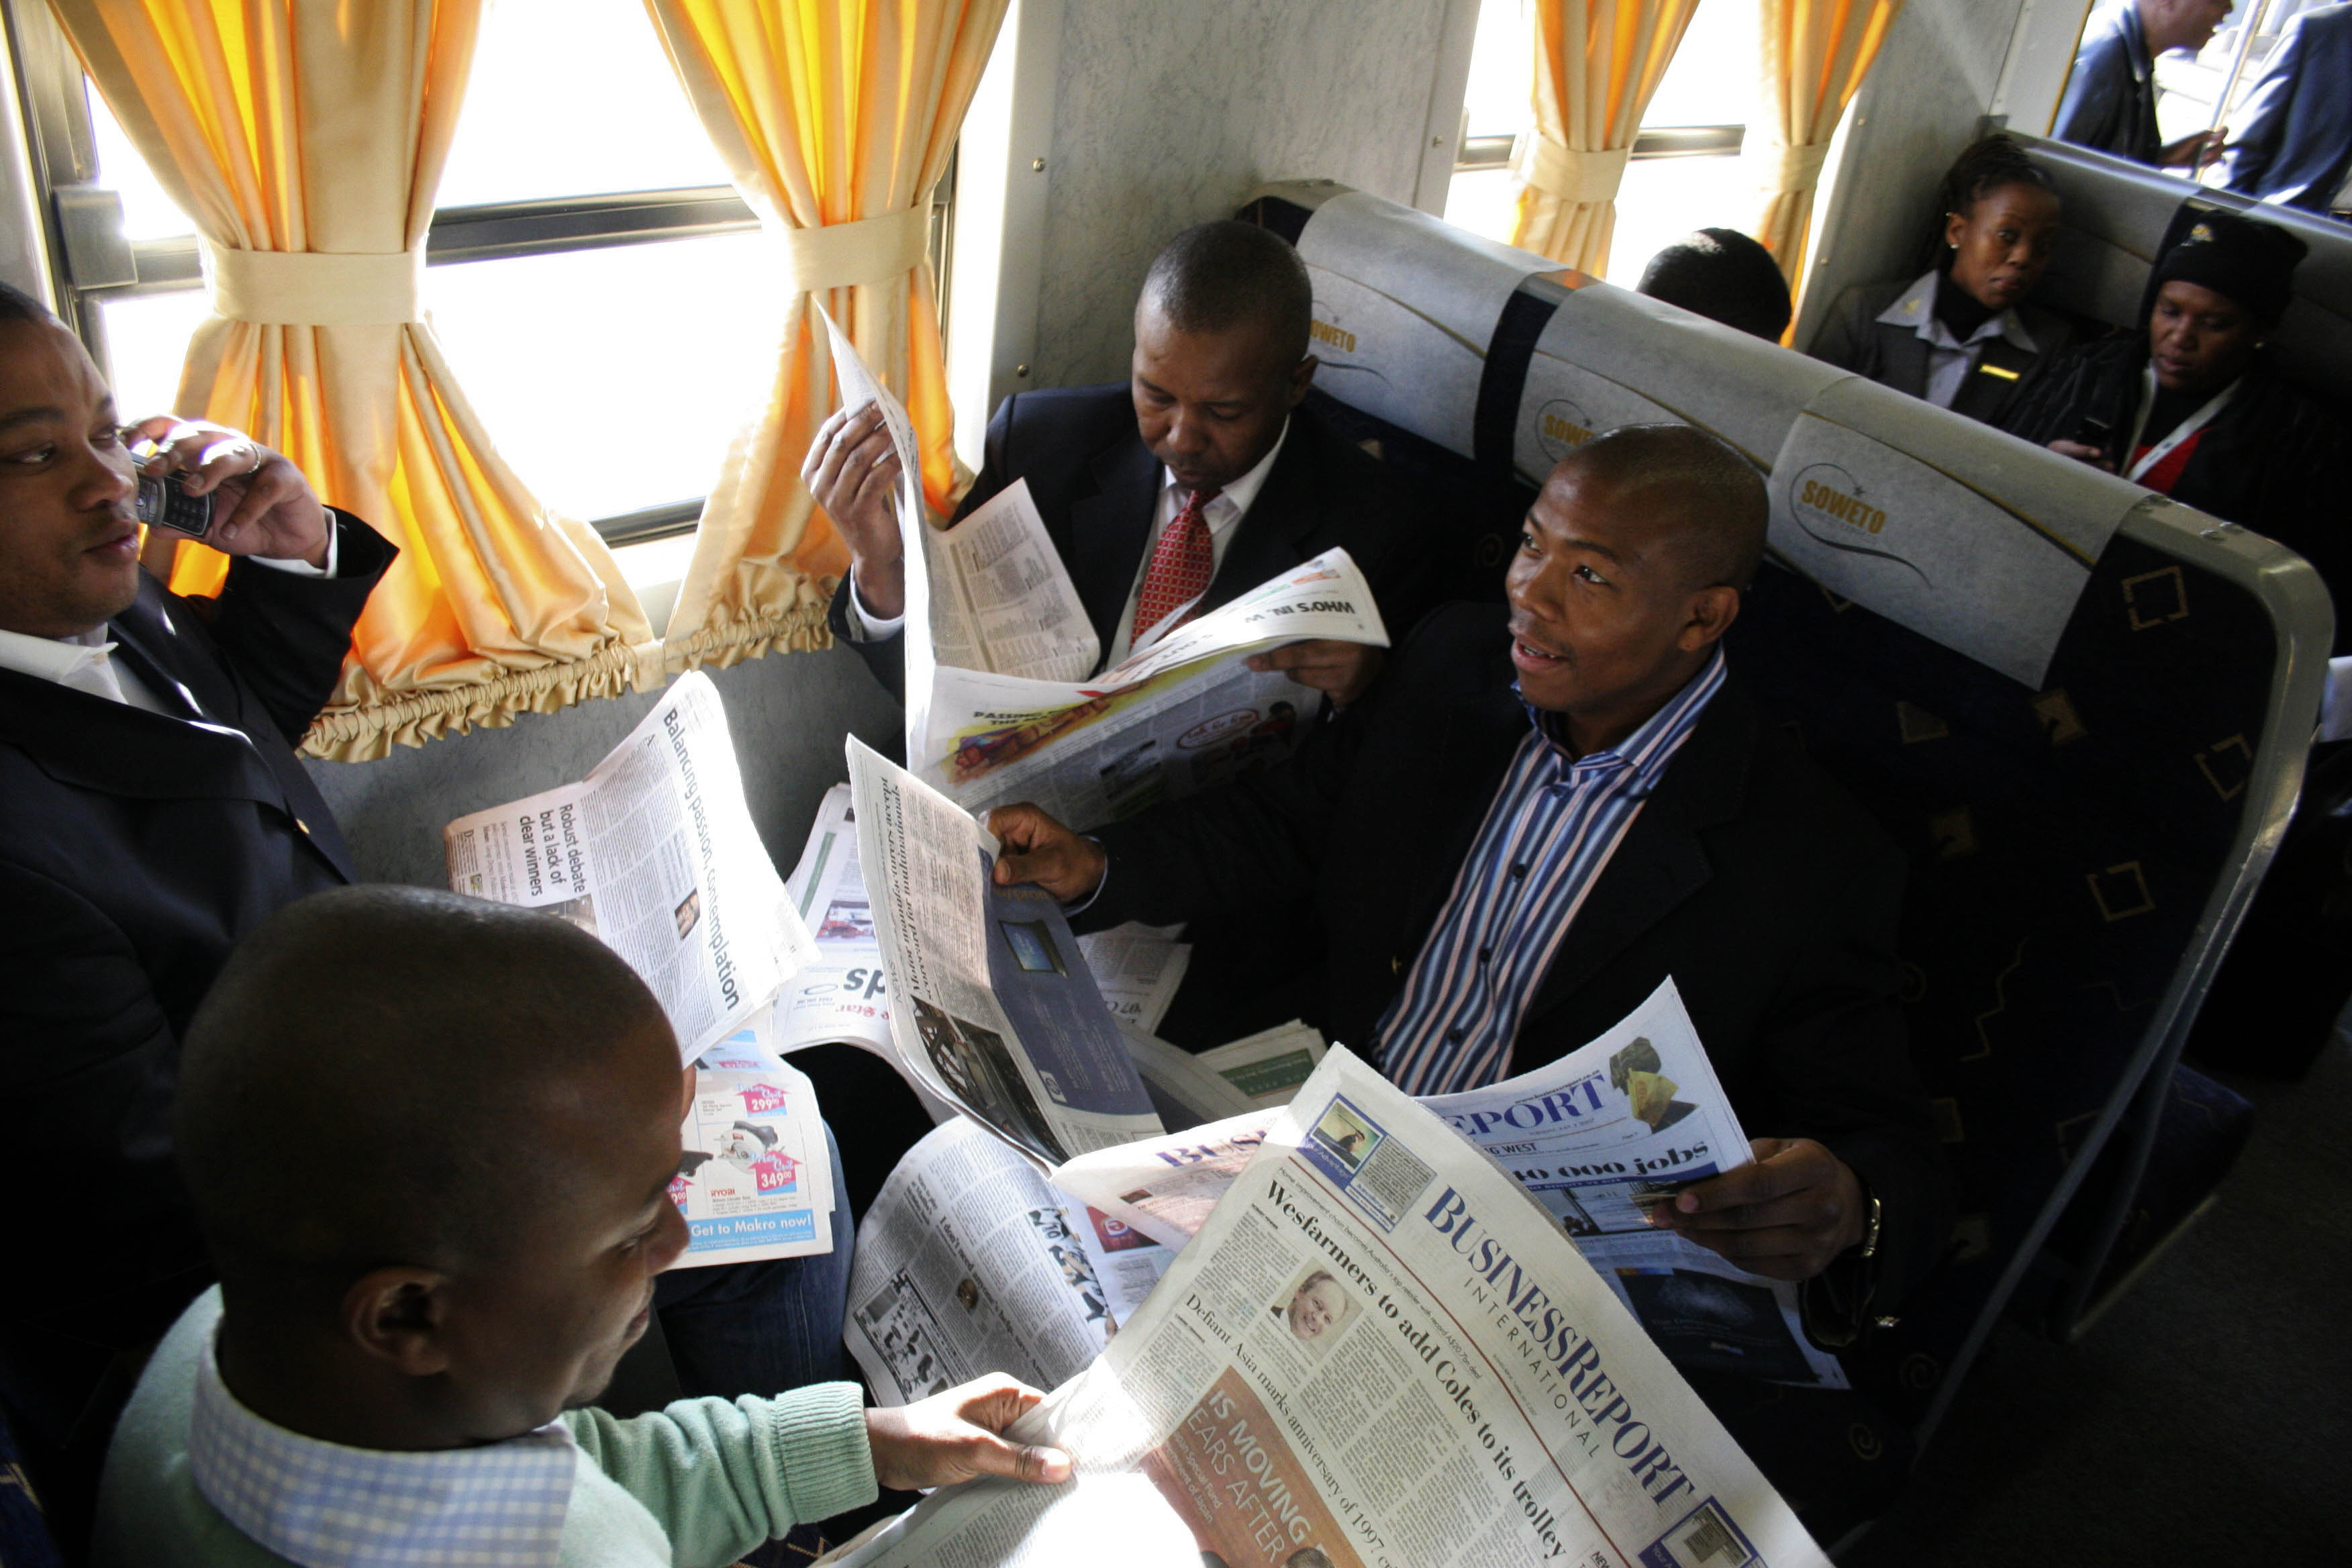 Passengers read newspapers on a business express train in Johannesburg.